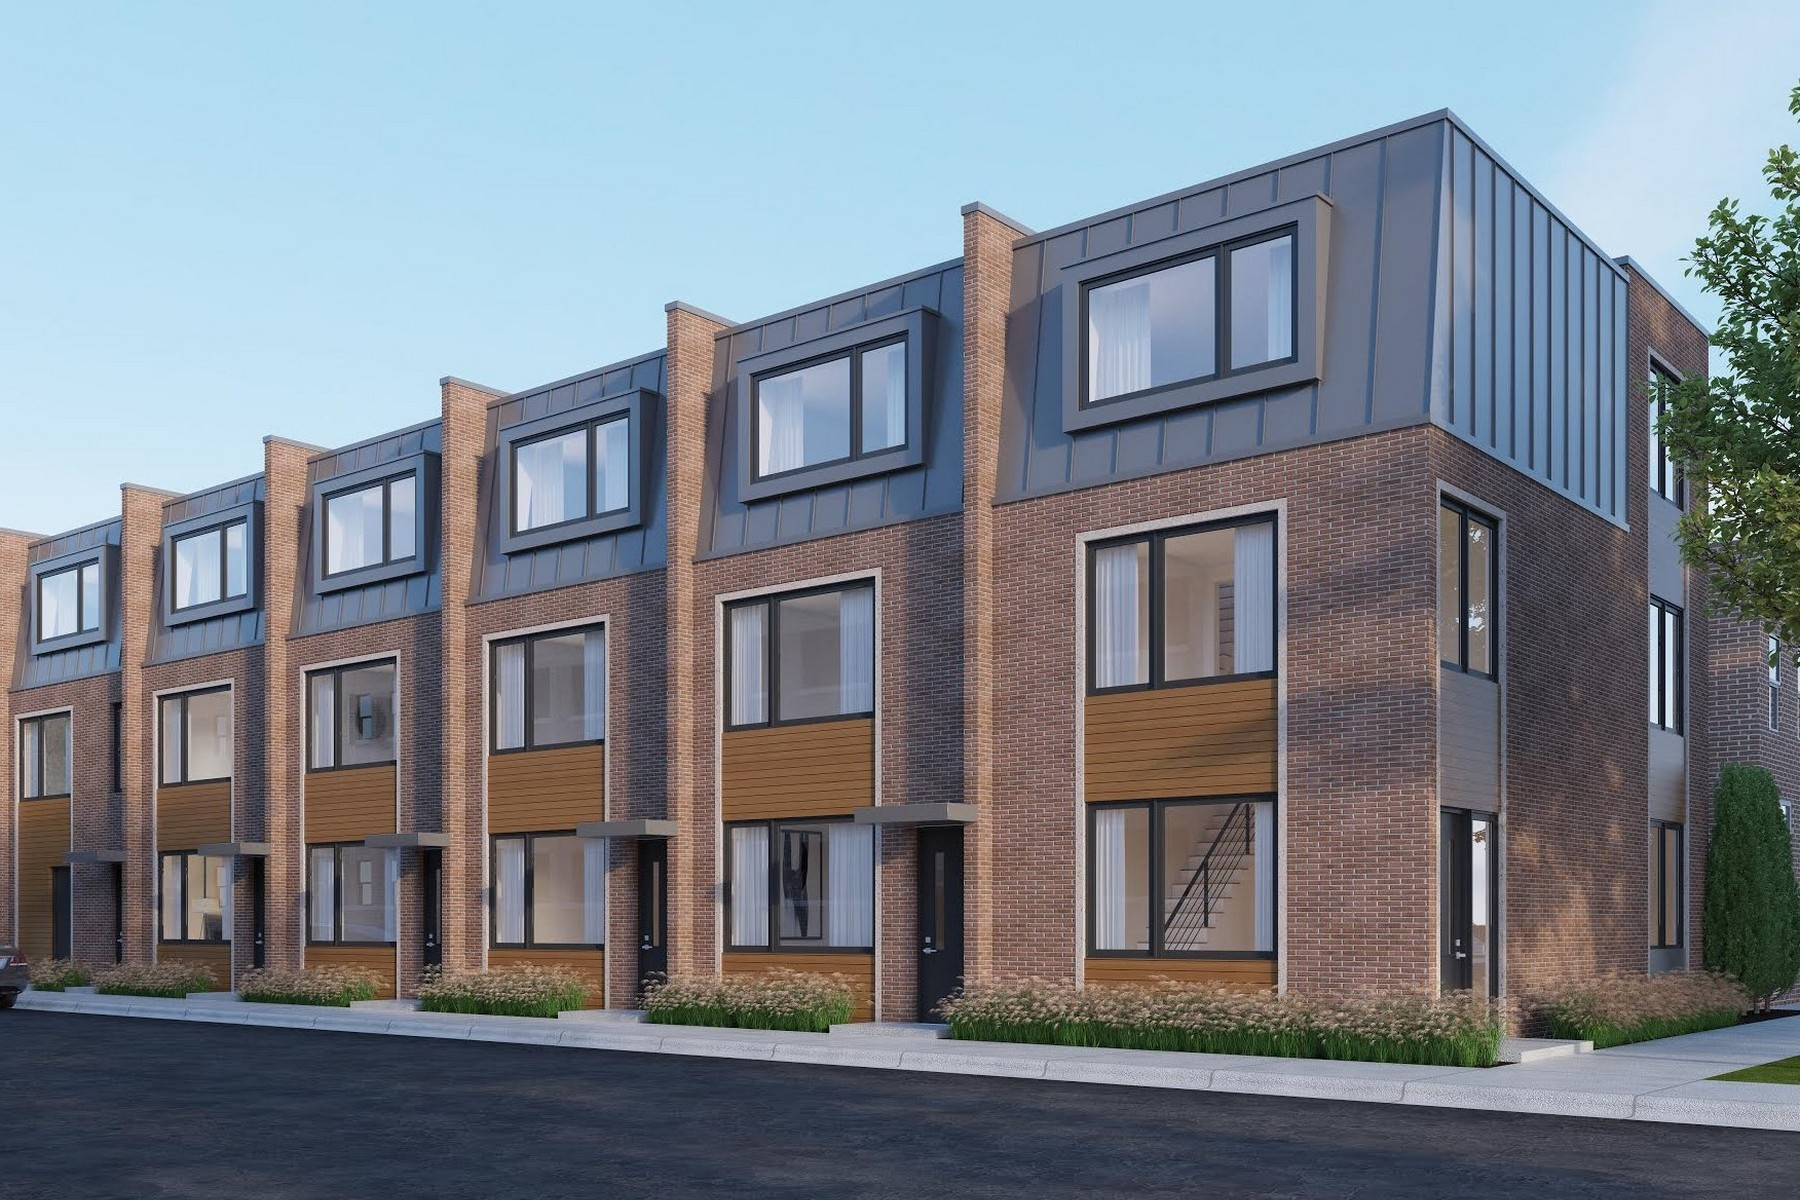 Townhouse for Sale at Logan Row: A Modern New Construction 2735 W Prindiville Street, Logan Square, Chicago, Illinois, 60647 United States